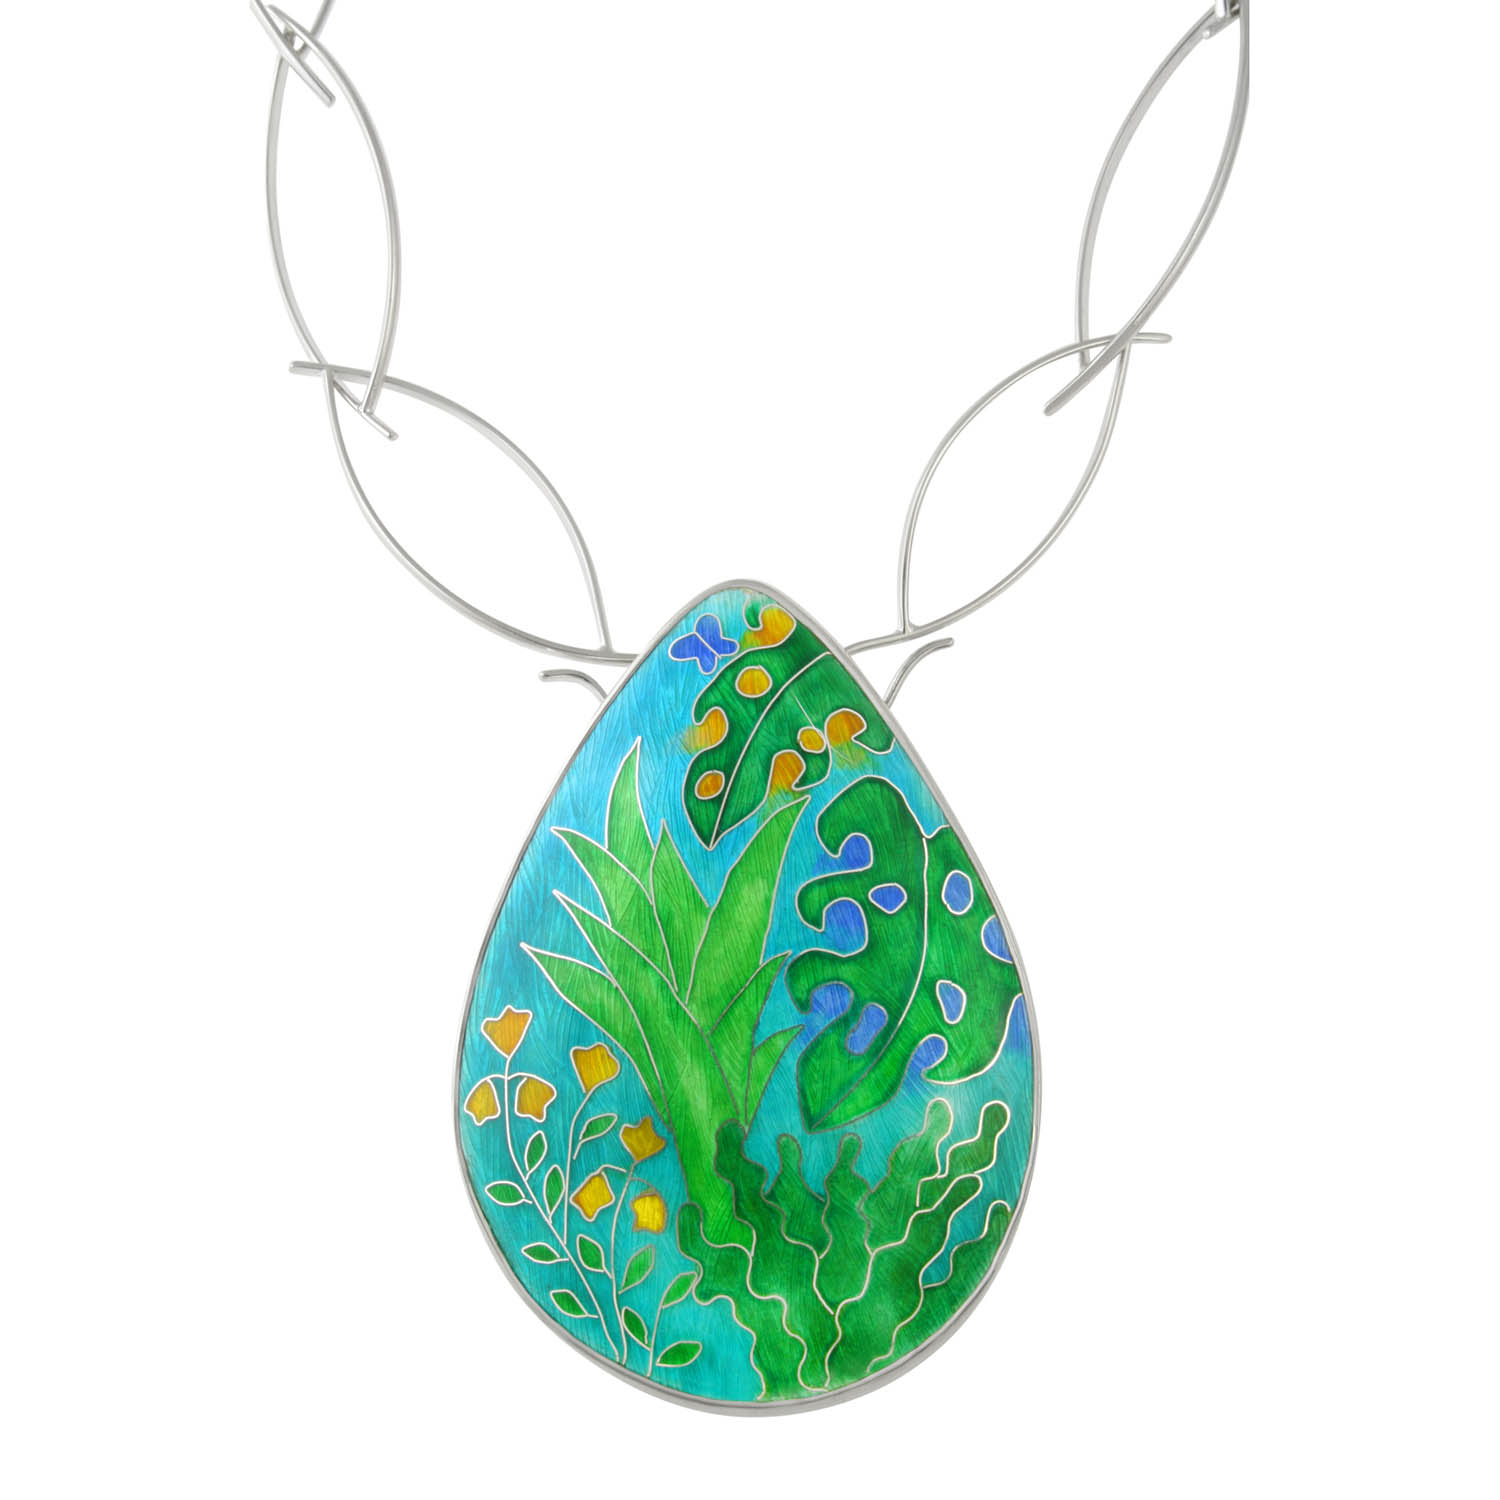 Linda Connelll Botanical Gardens Wisley Necklace